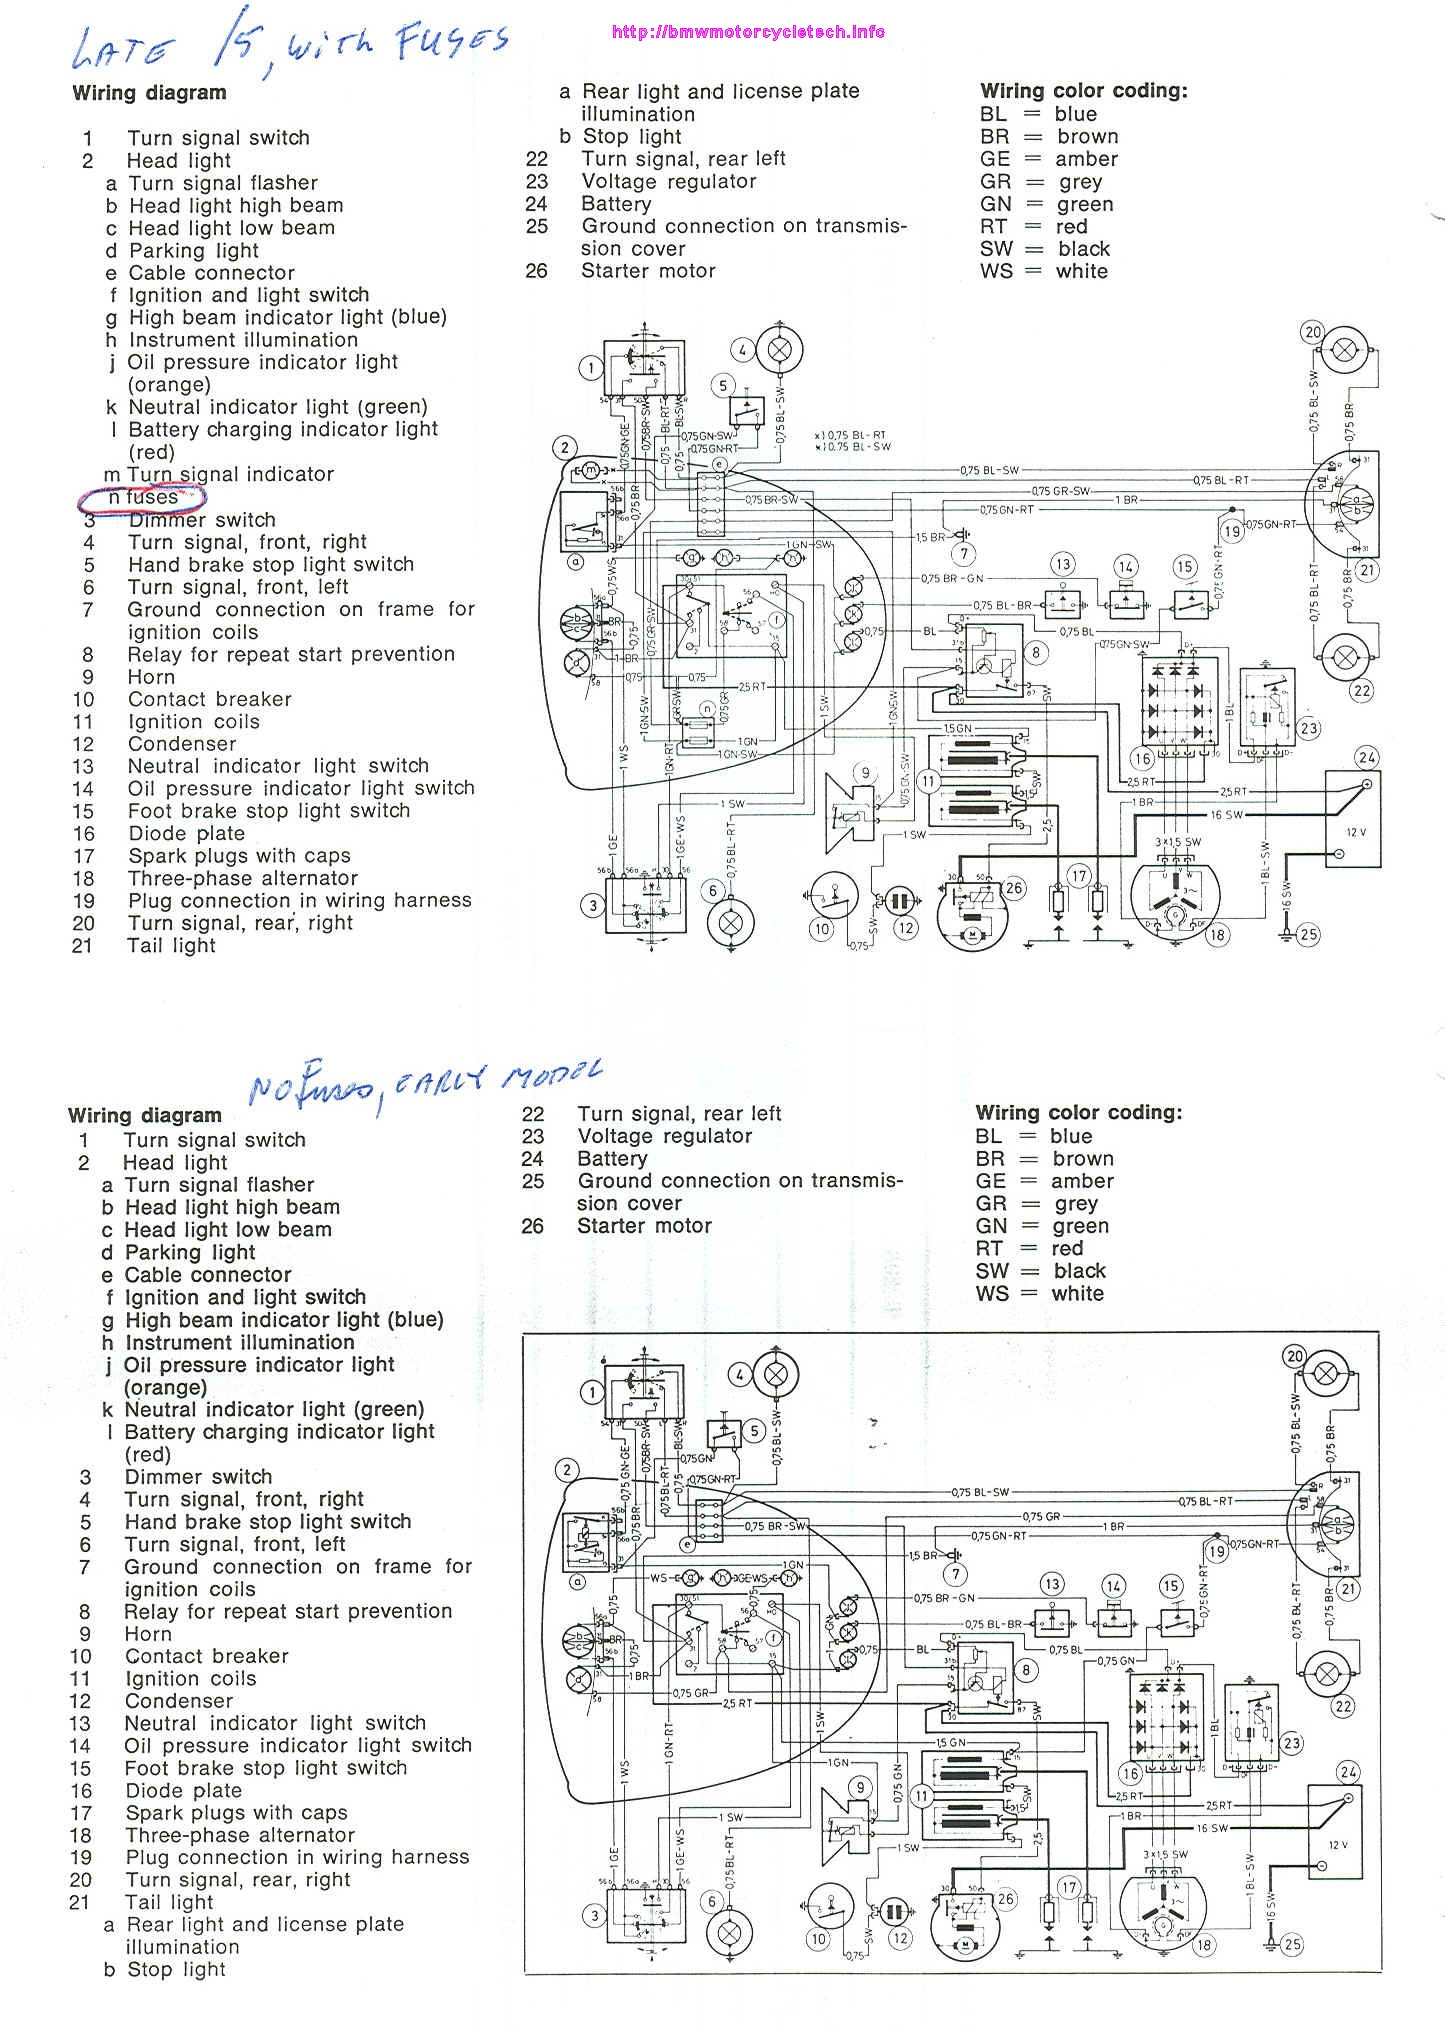 MP250E Sellparts furthermore Schwinn Valo 50 Wd as well 49cc Pocket Bike Wiring Diagram moreover Honda Helix Wiring Diagram additionally Yamaha Grizzly 450 Wiring Diagram. on gas scooter wiring diagram